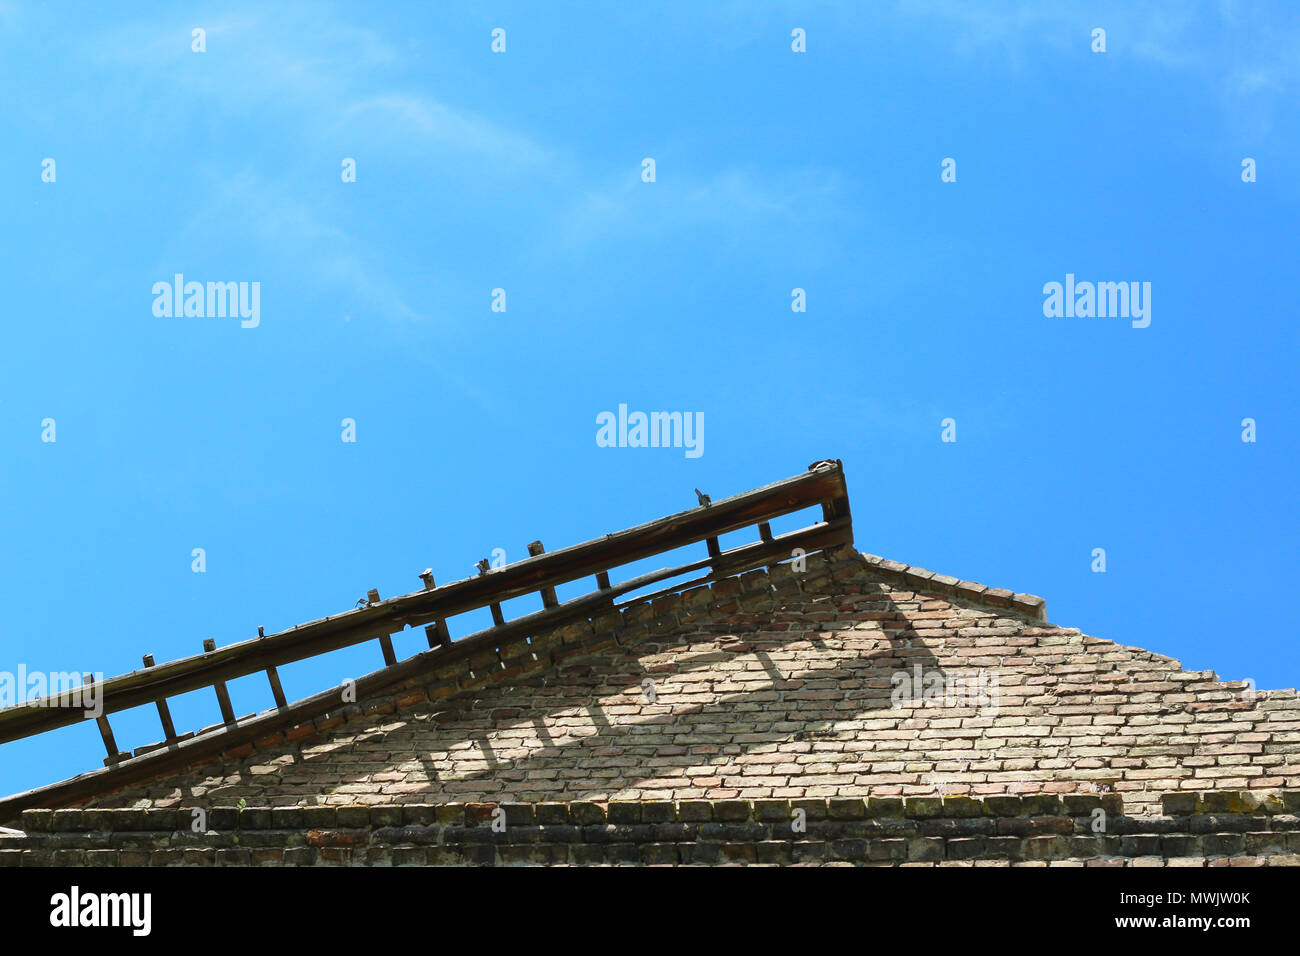 old castle roof and sky - Stock Image